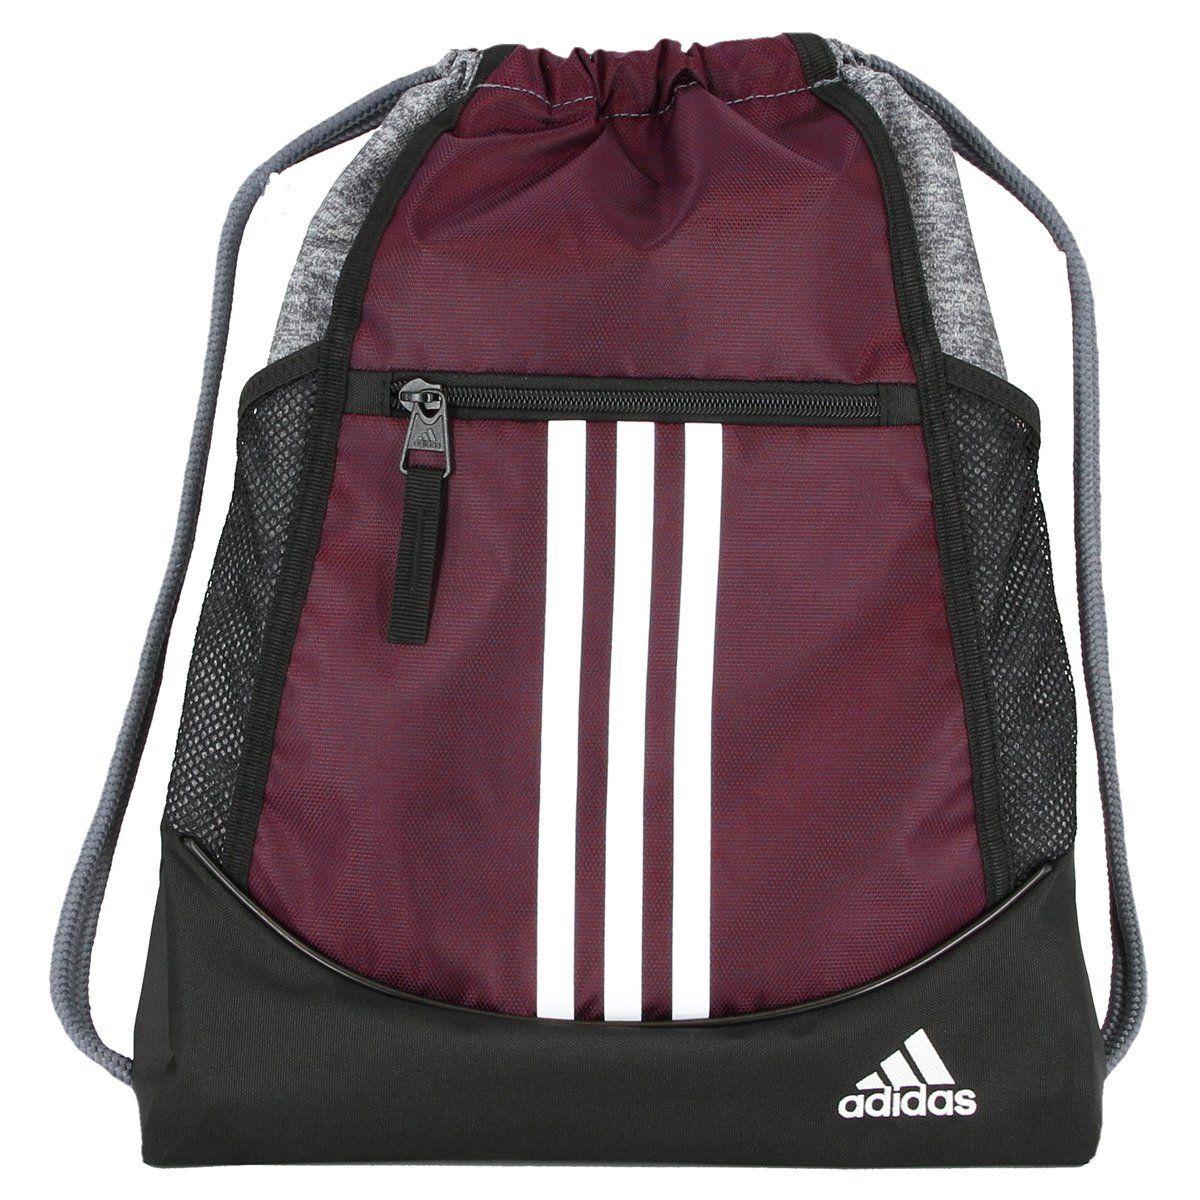 ef0c8fb39718 Color Dark Burgundy Onix Jersey Black White adidas Alliance Sack Pack Drawstring  Gym Bags Unisex Backpacks Sports Sackpacks With two water bottle pockets ...